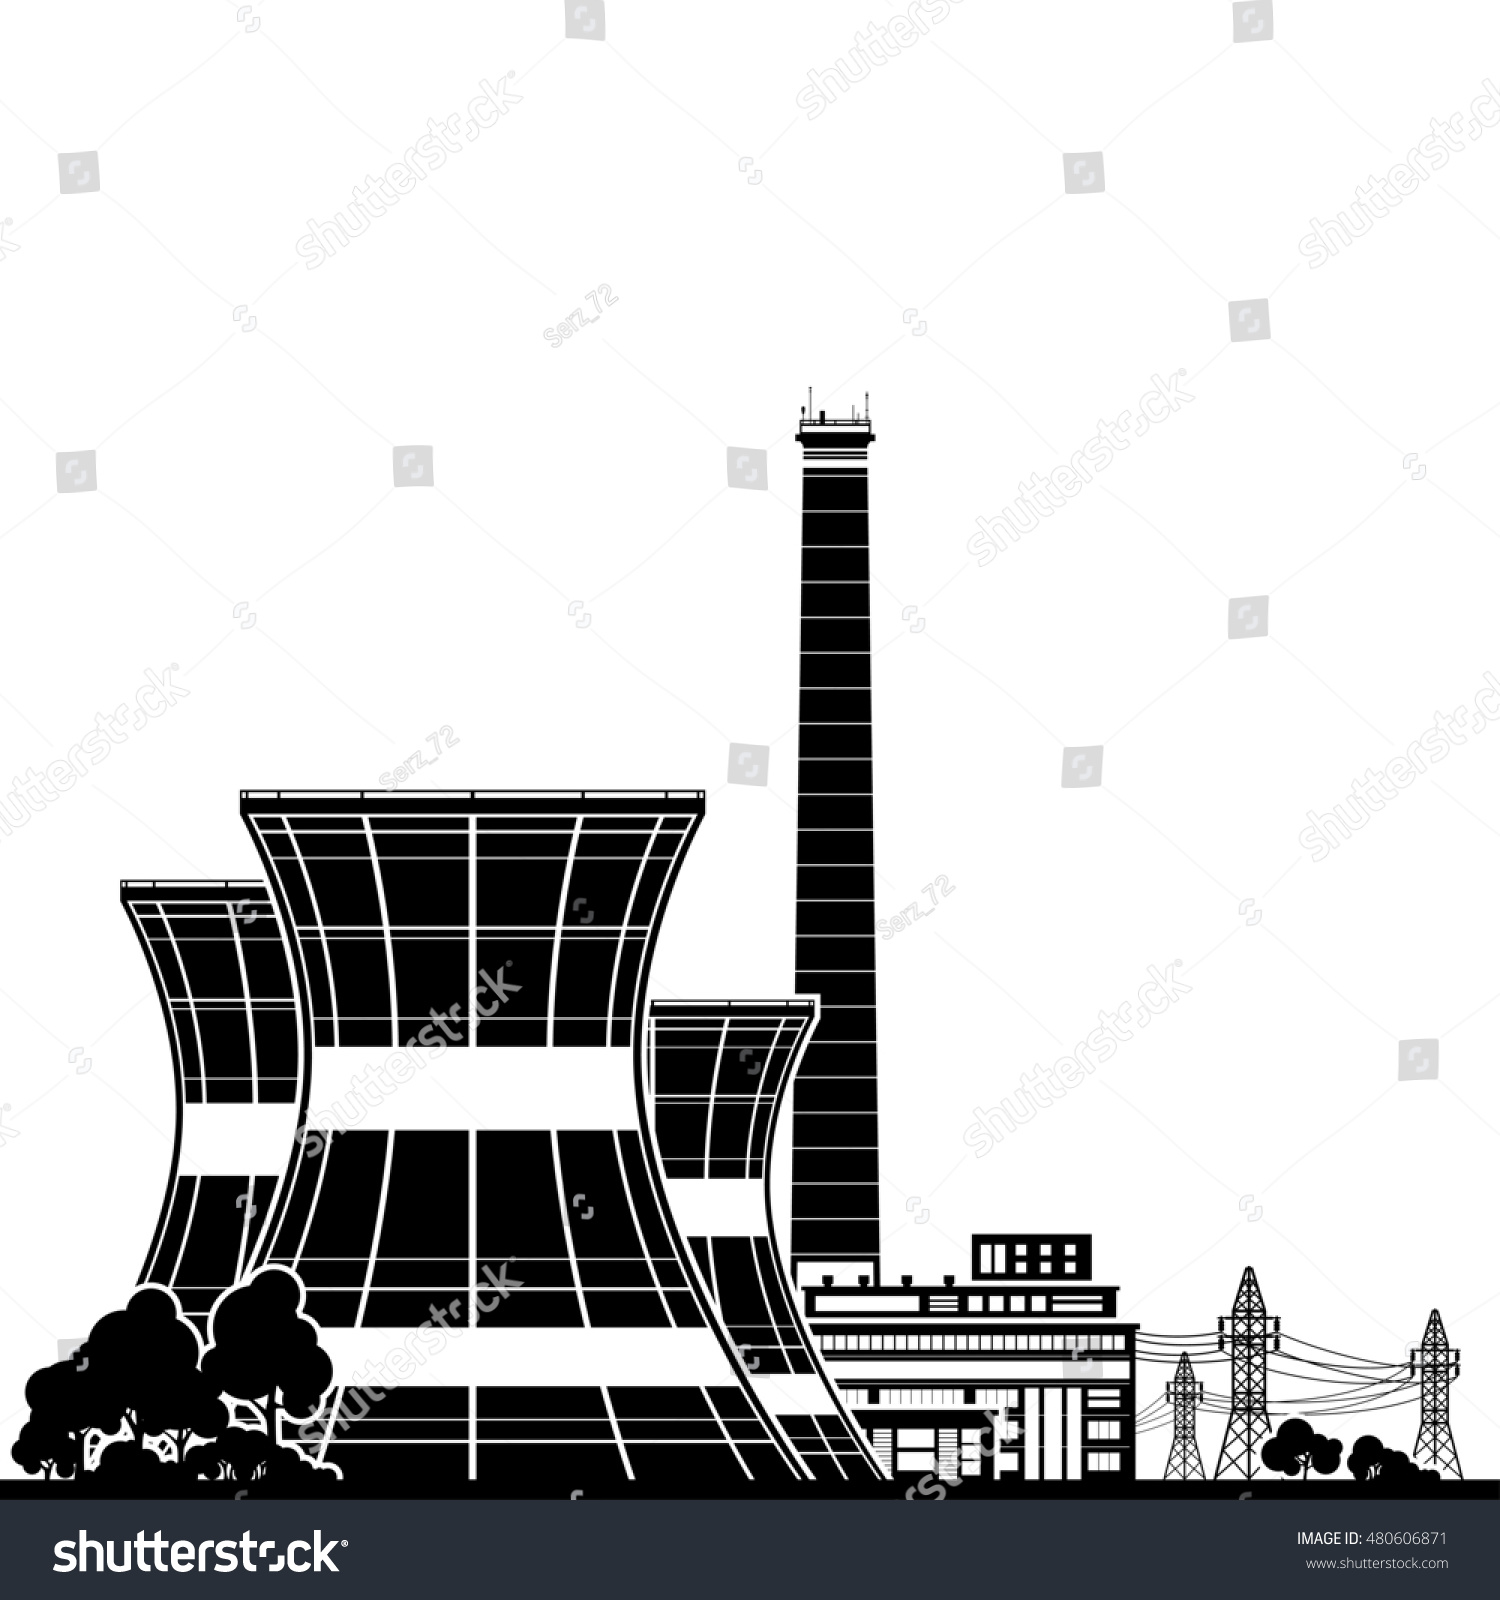 Silhouette Nuclear Power Plant Thermal Power Stock Illustration